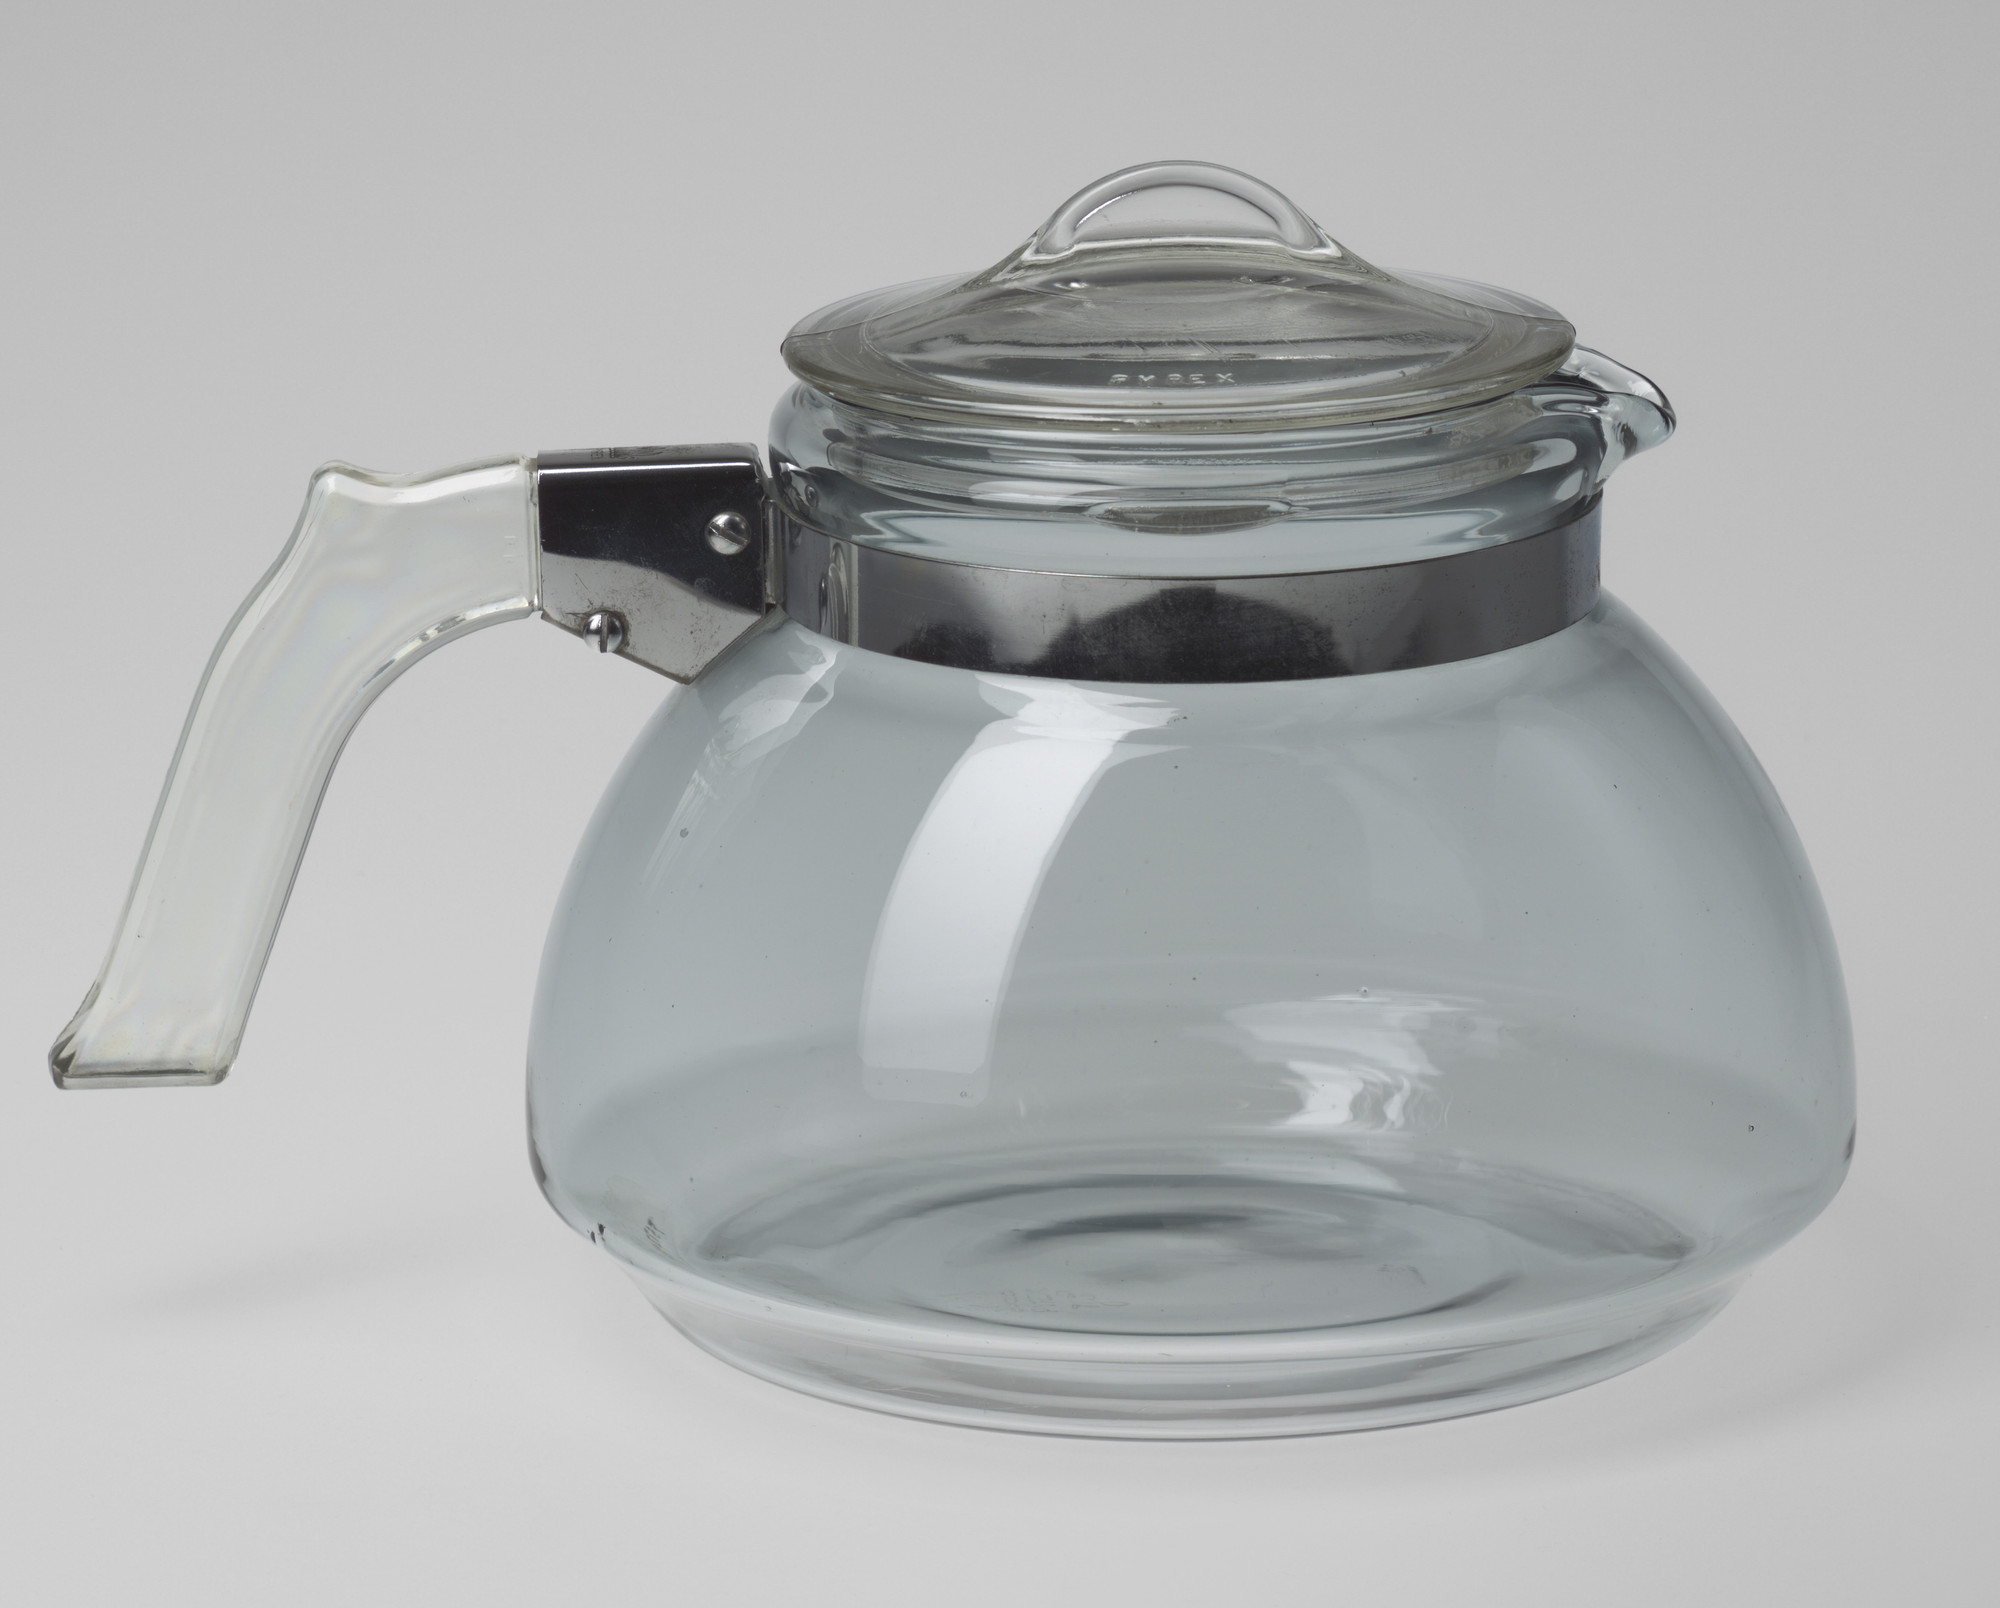 Corning Glass Works, Corning, NY. Tea Kettle. 1940